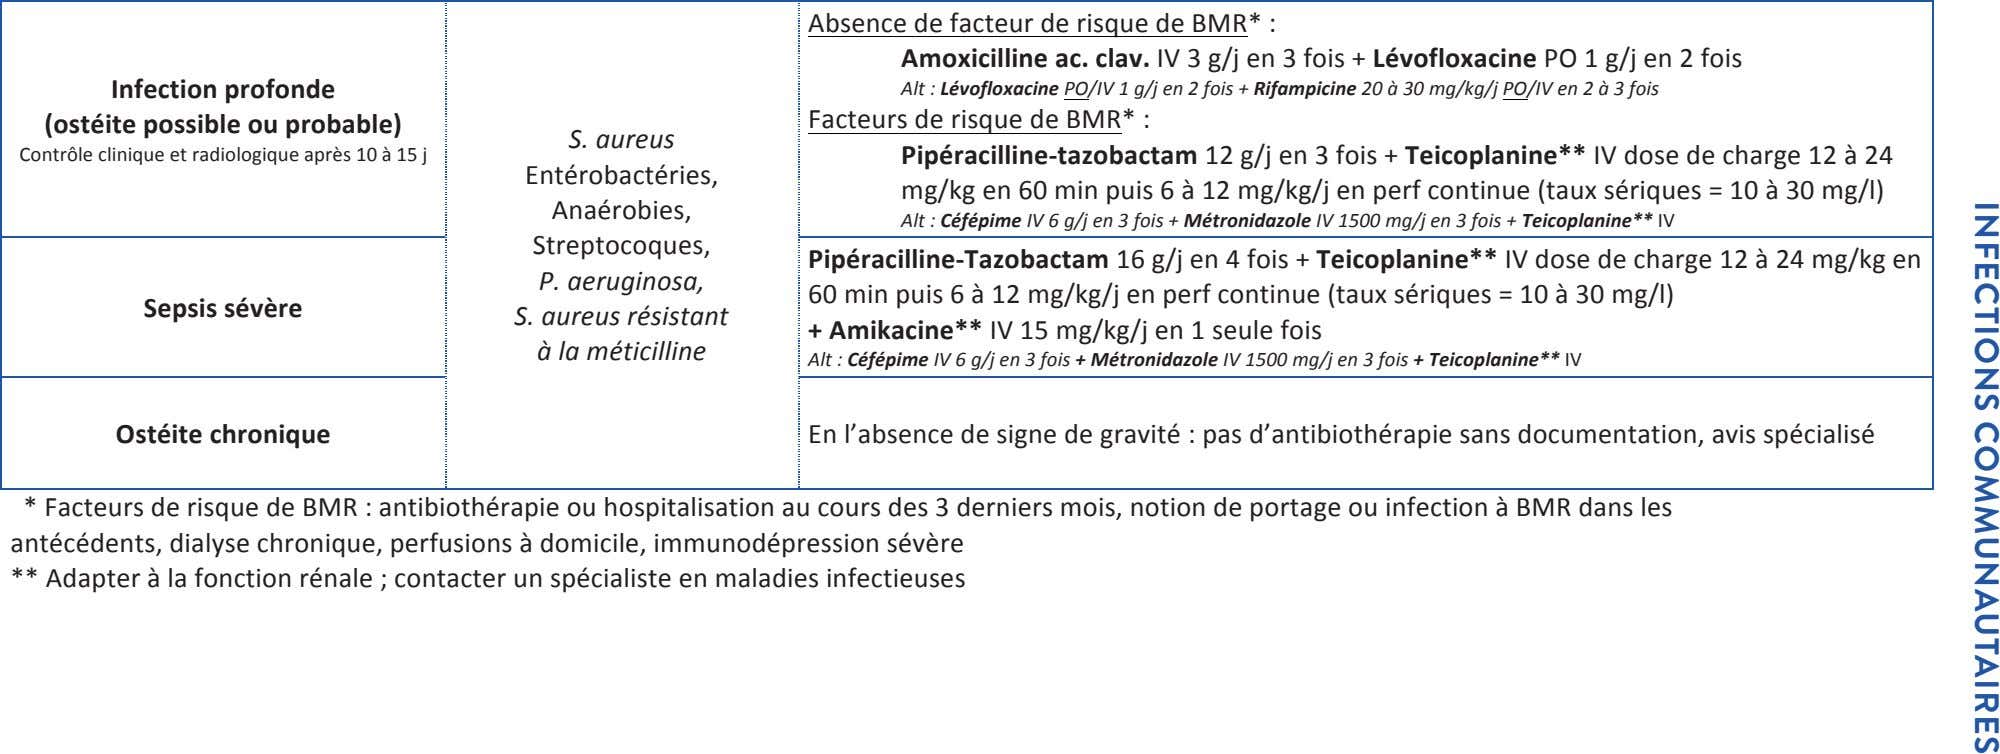 InfectIons communautaIres Absence de facteur de risque de BMR* : Amoxicilline ac. clav. IV 3